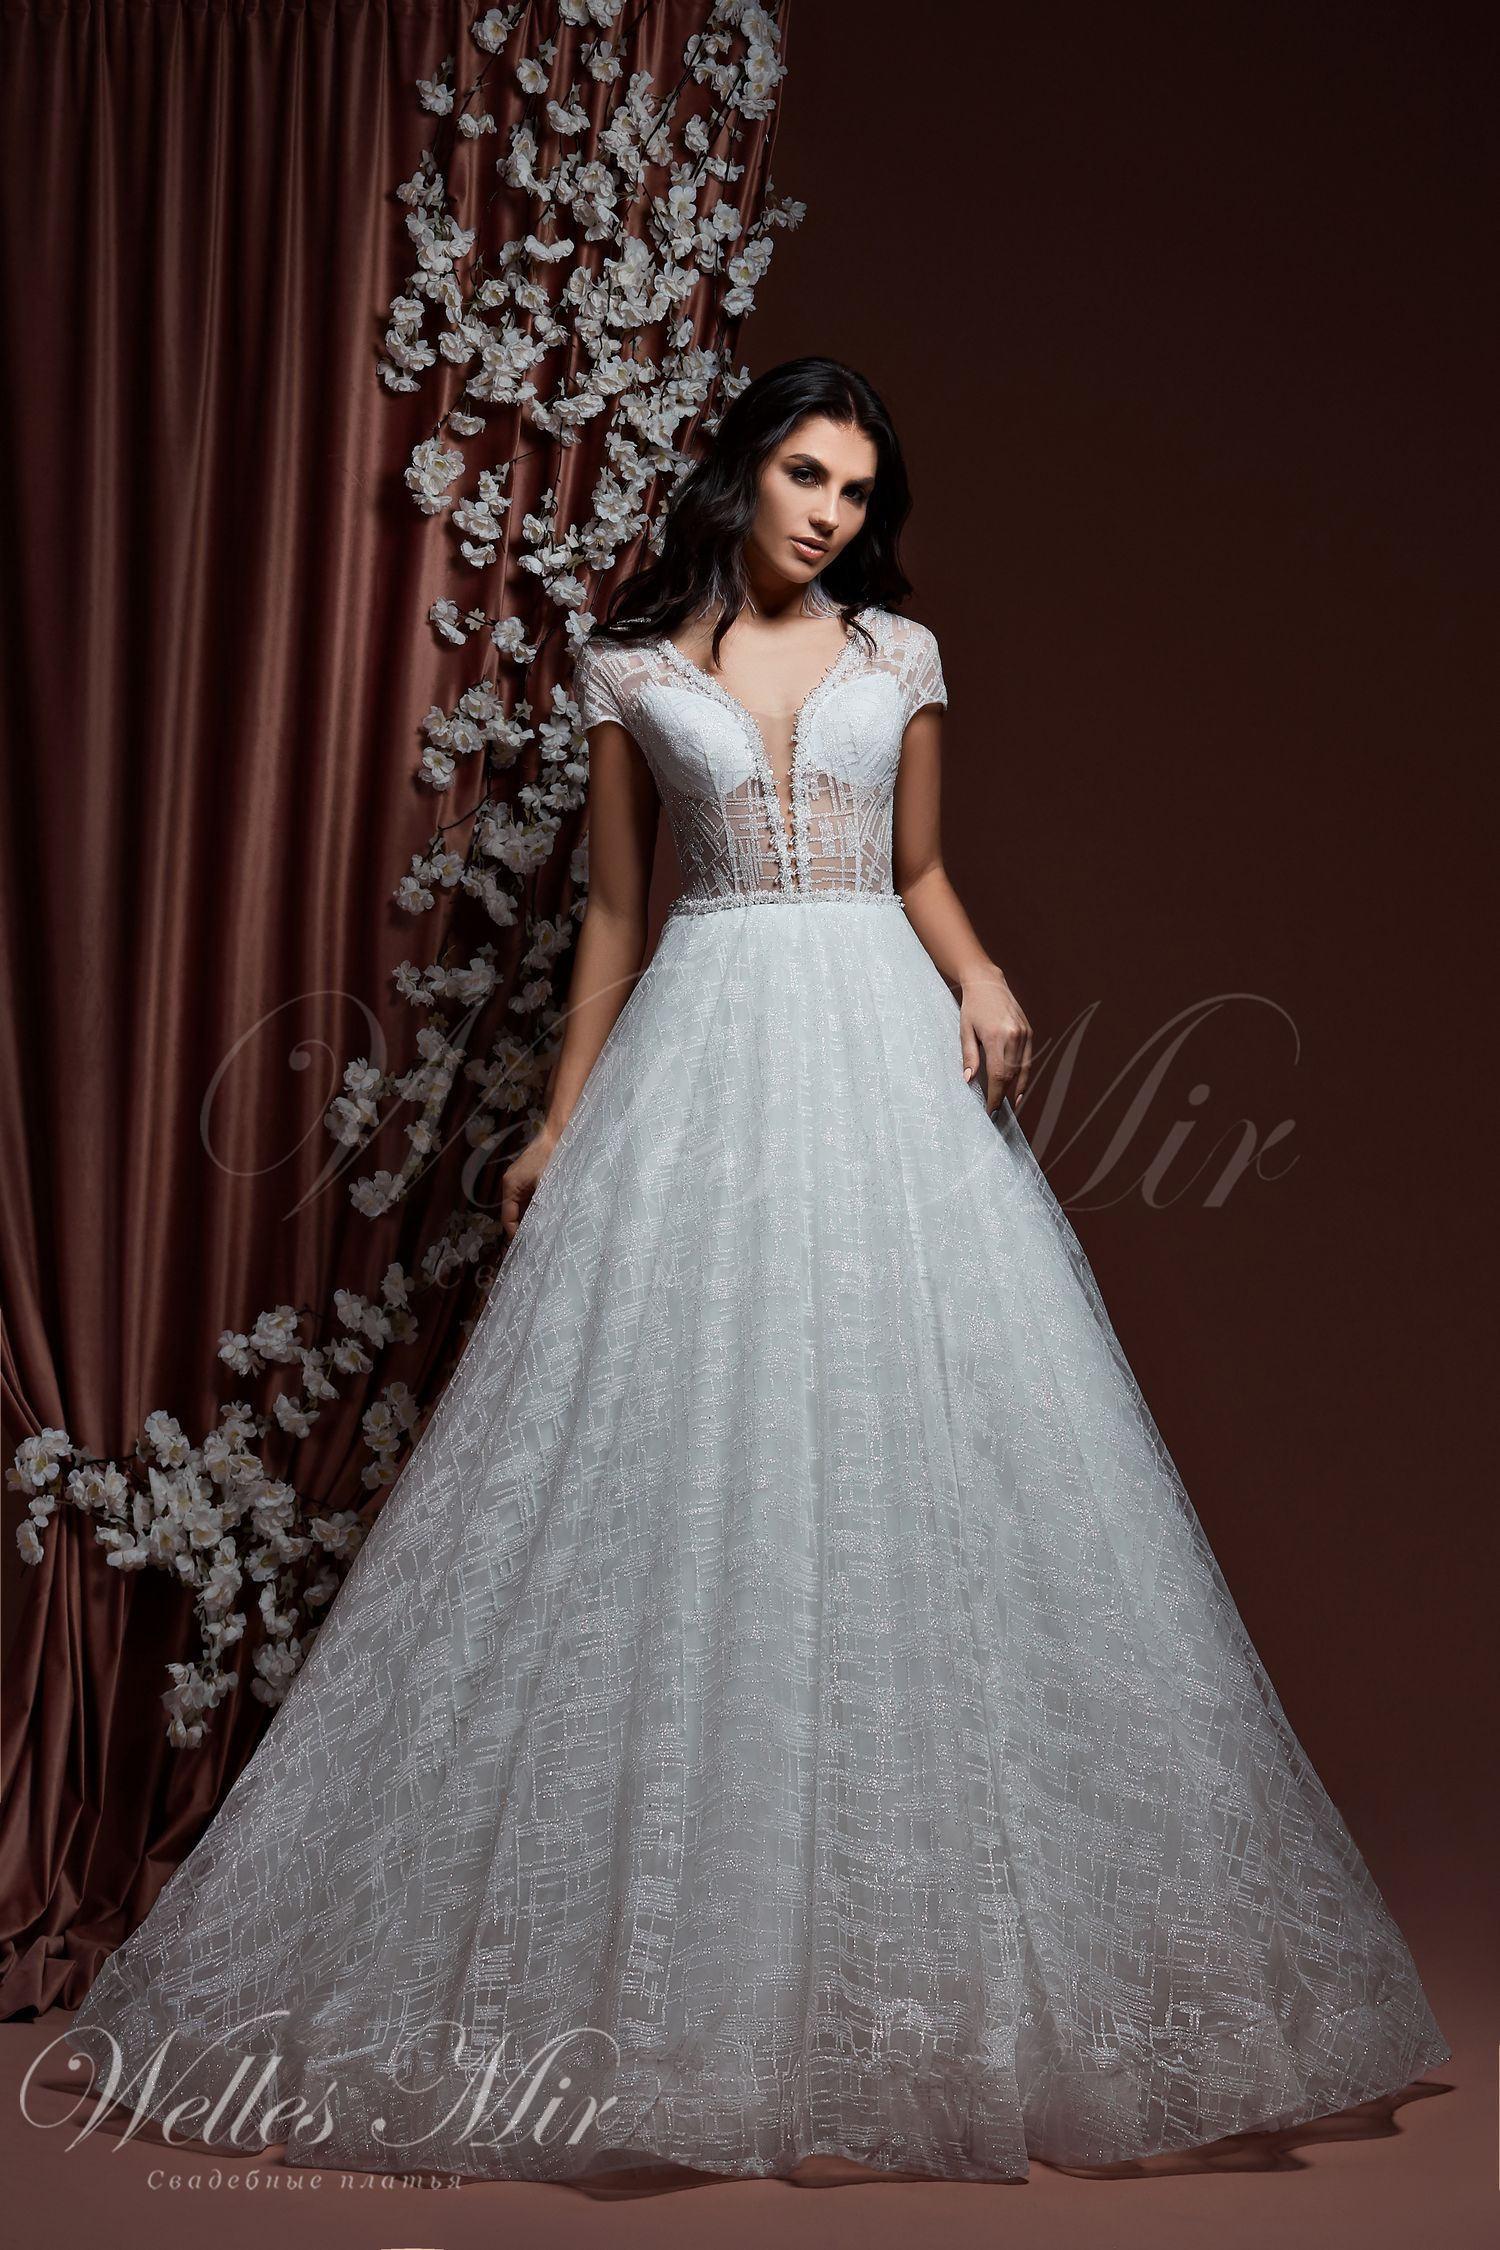 Wedding dresses 501